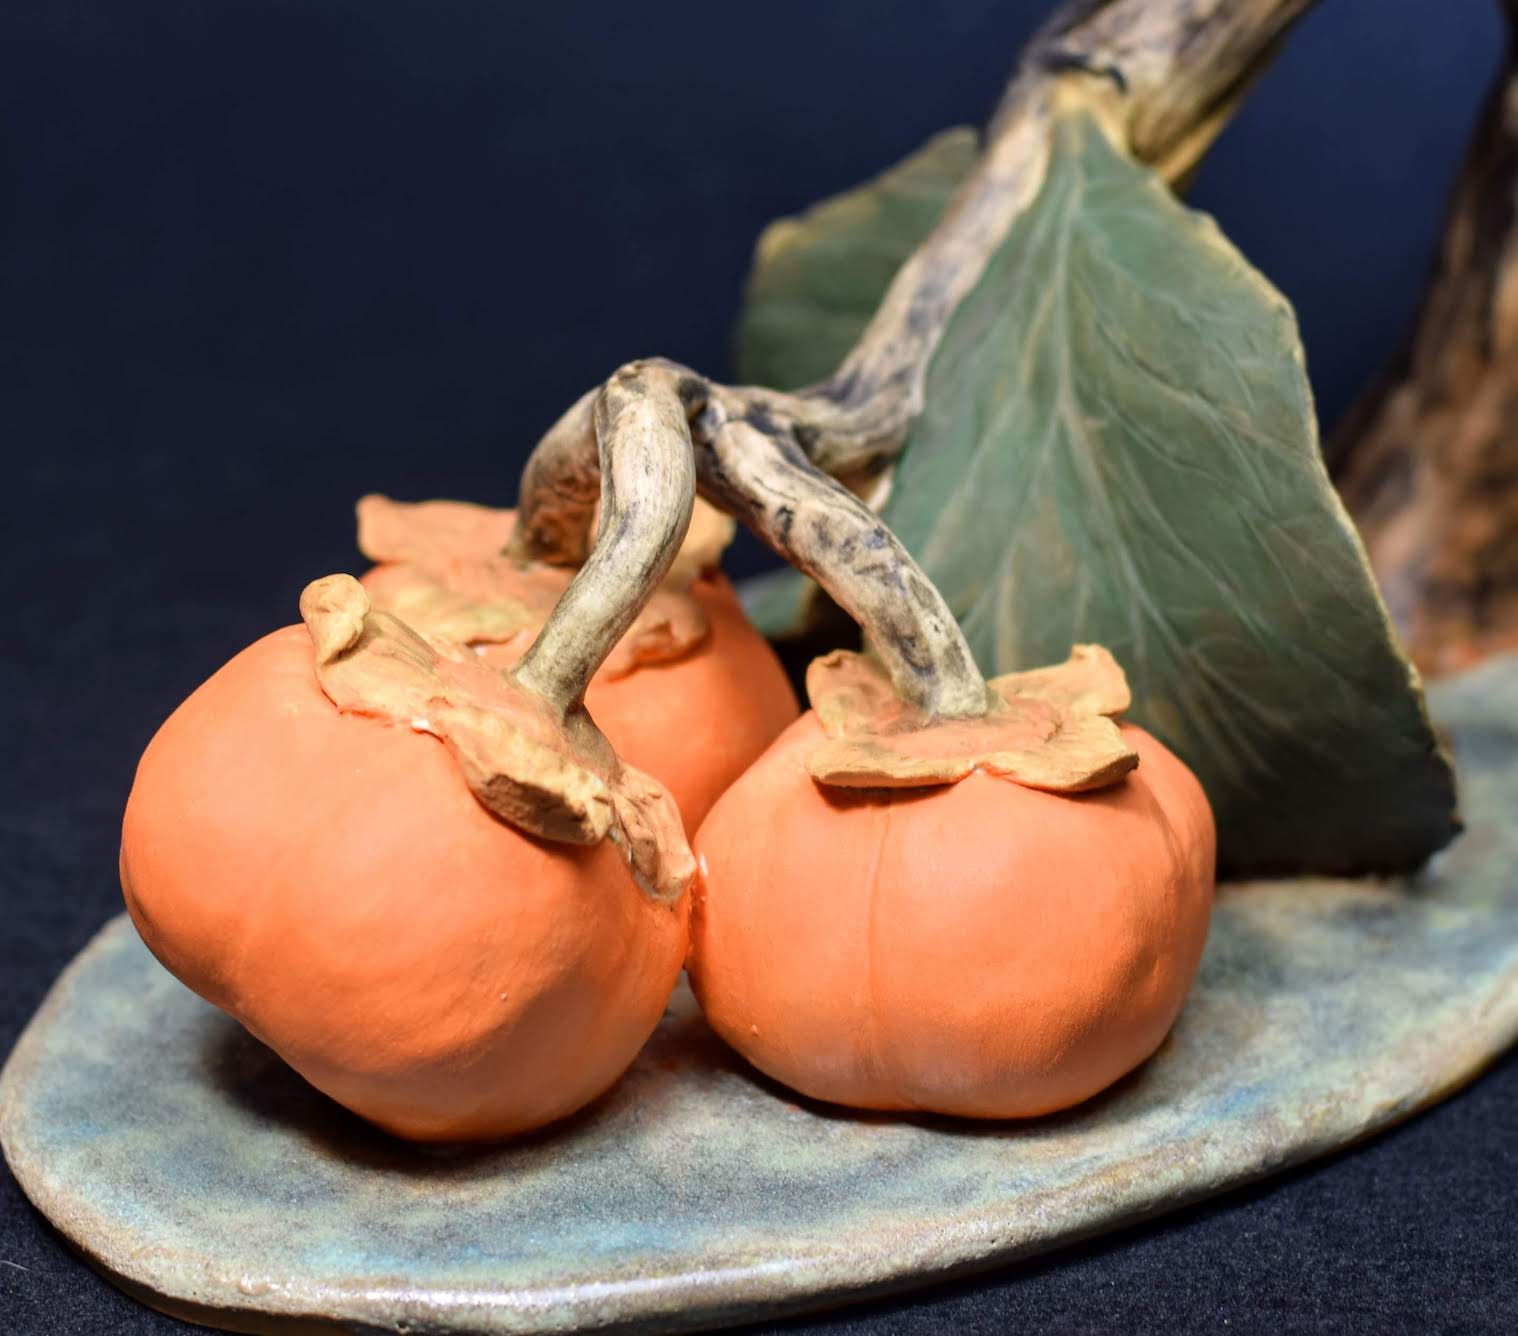 Magpie and Persimmons